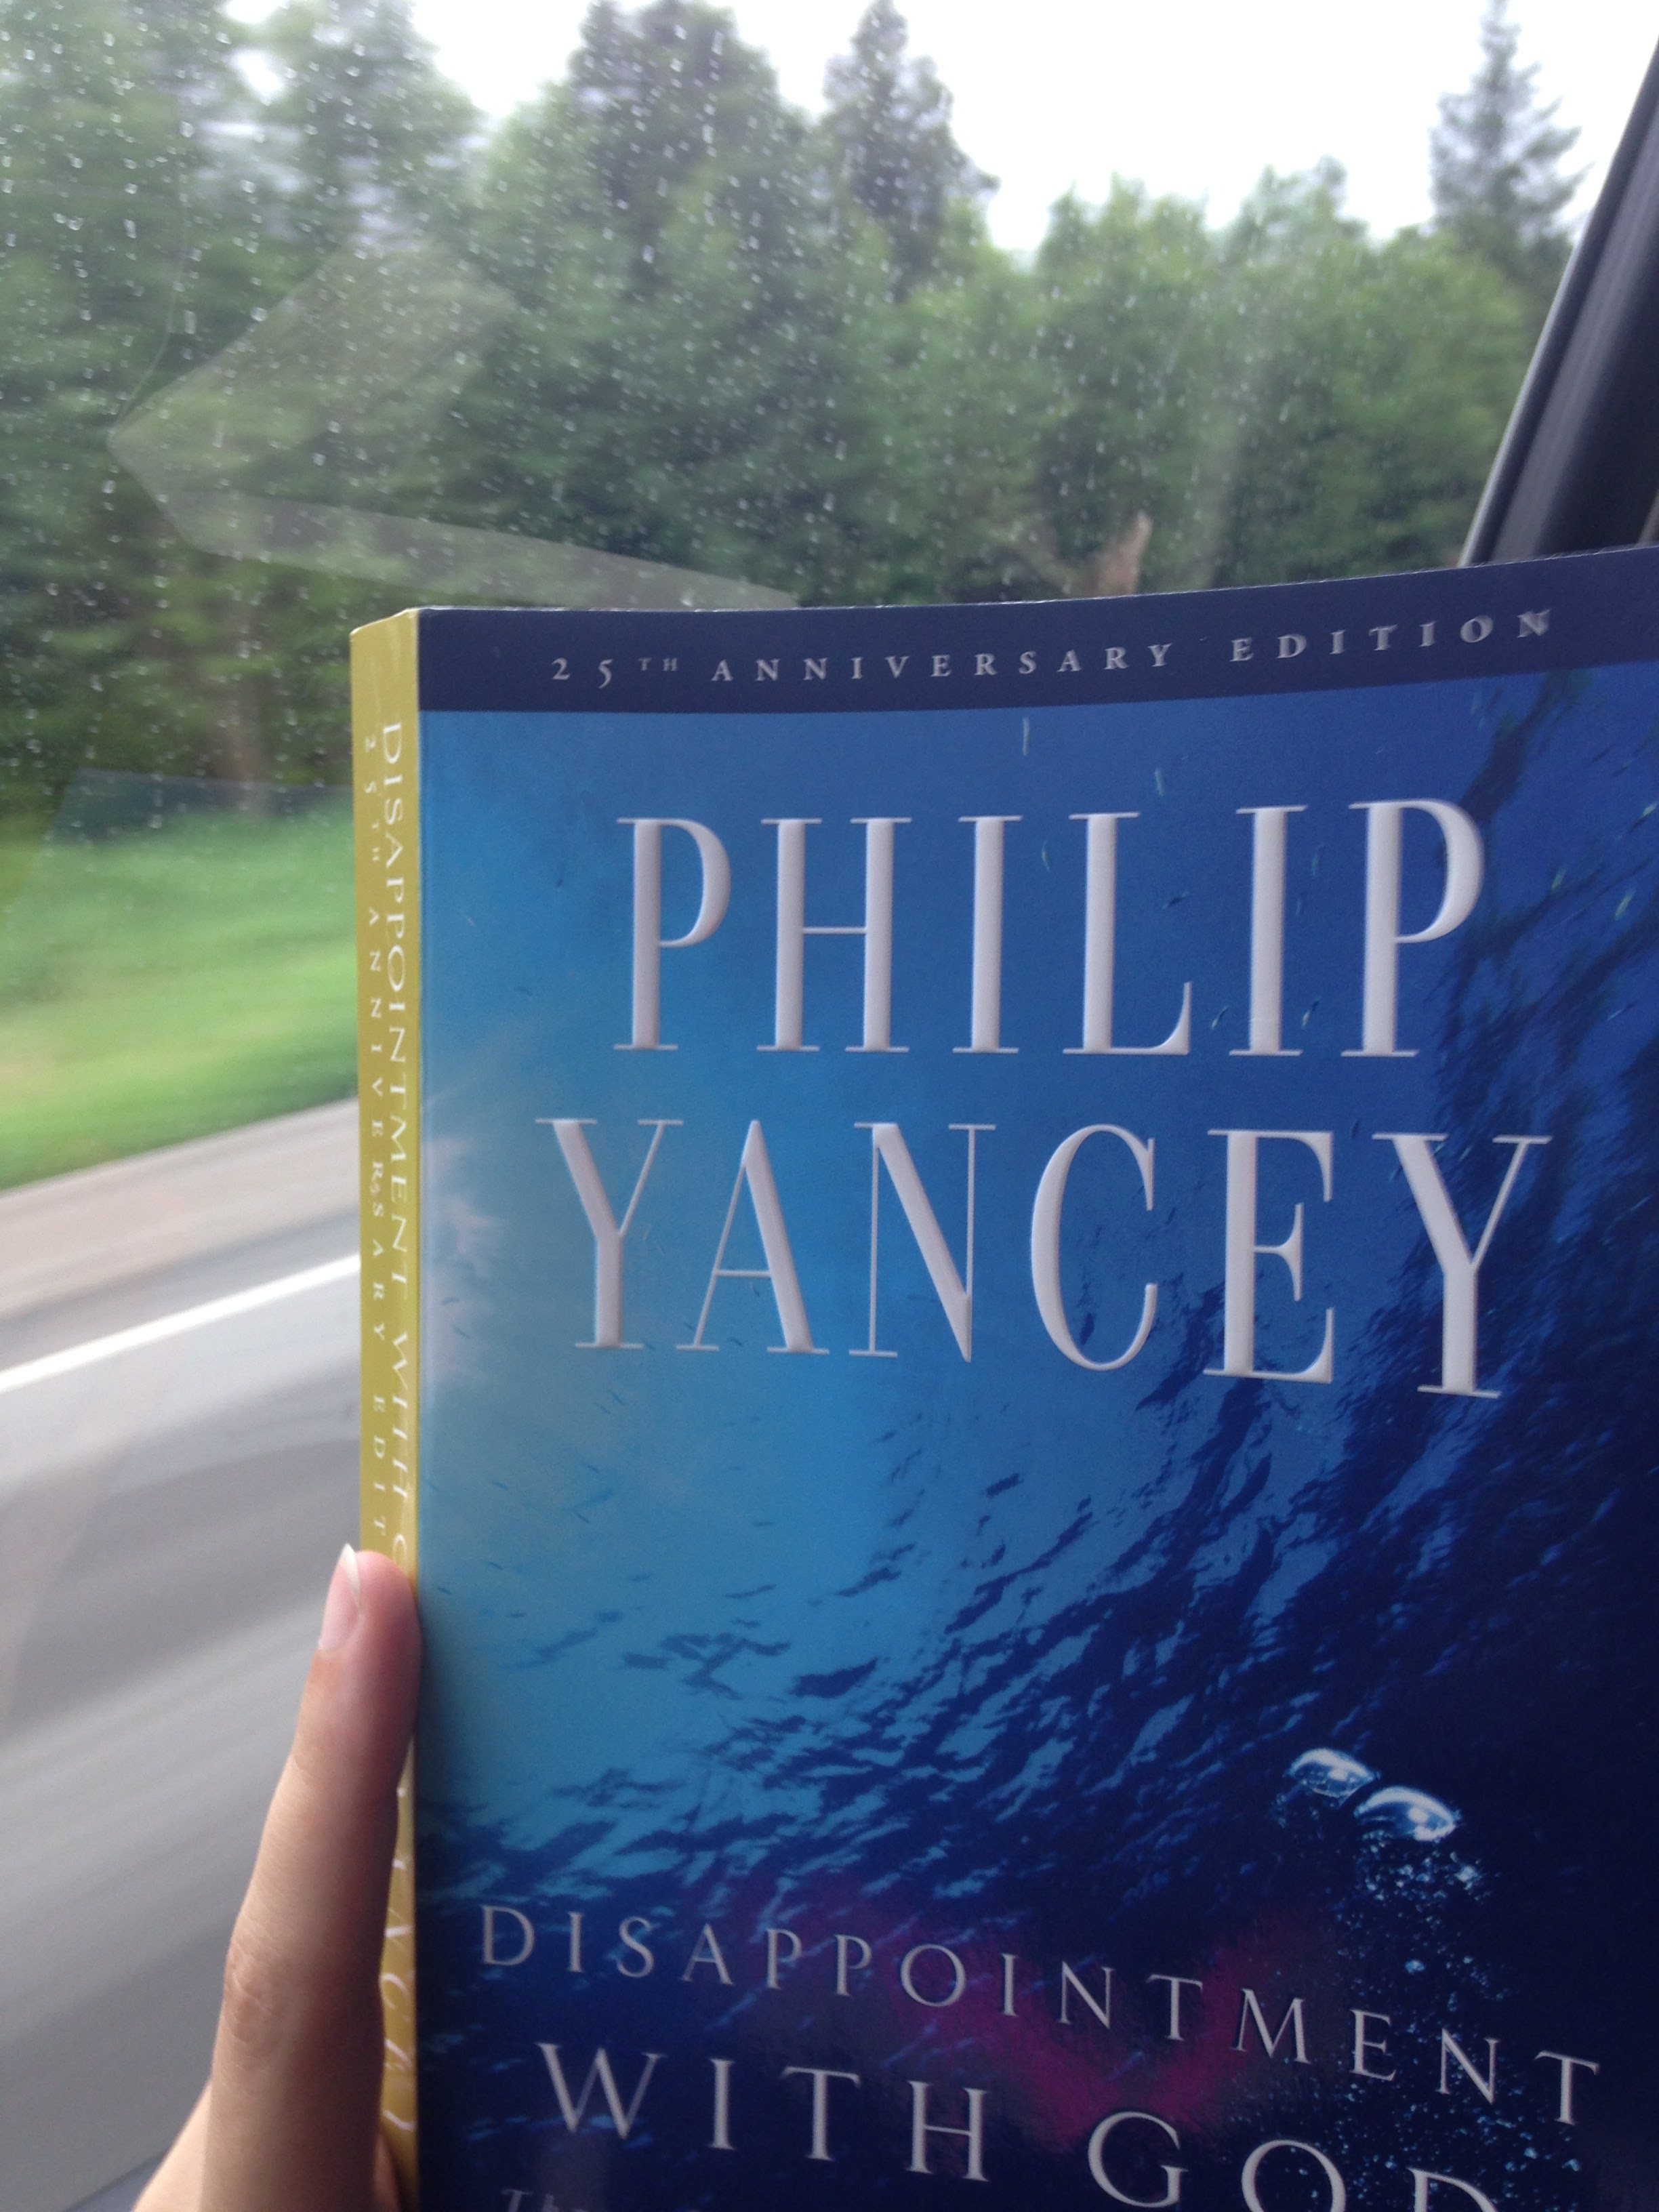 Disappointment-with-God-by-Philip-Yancey.jpg